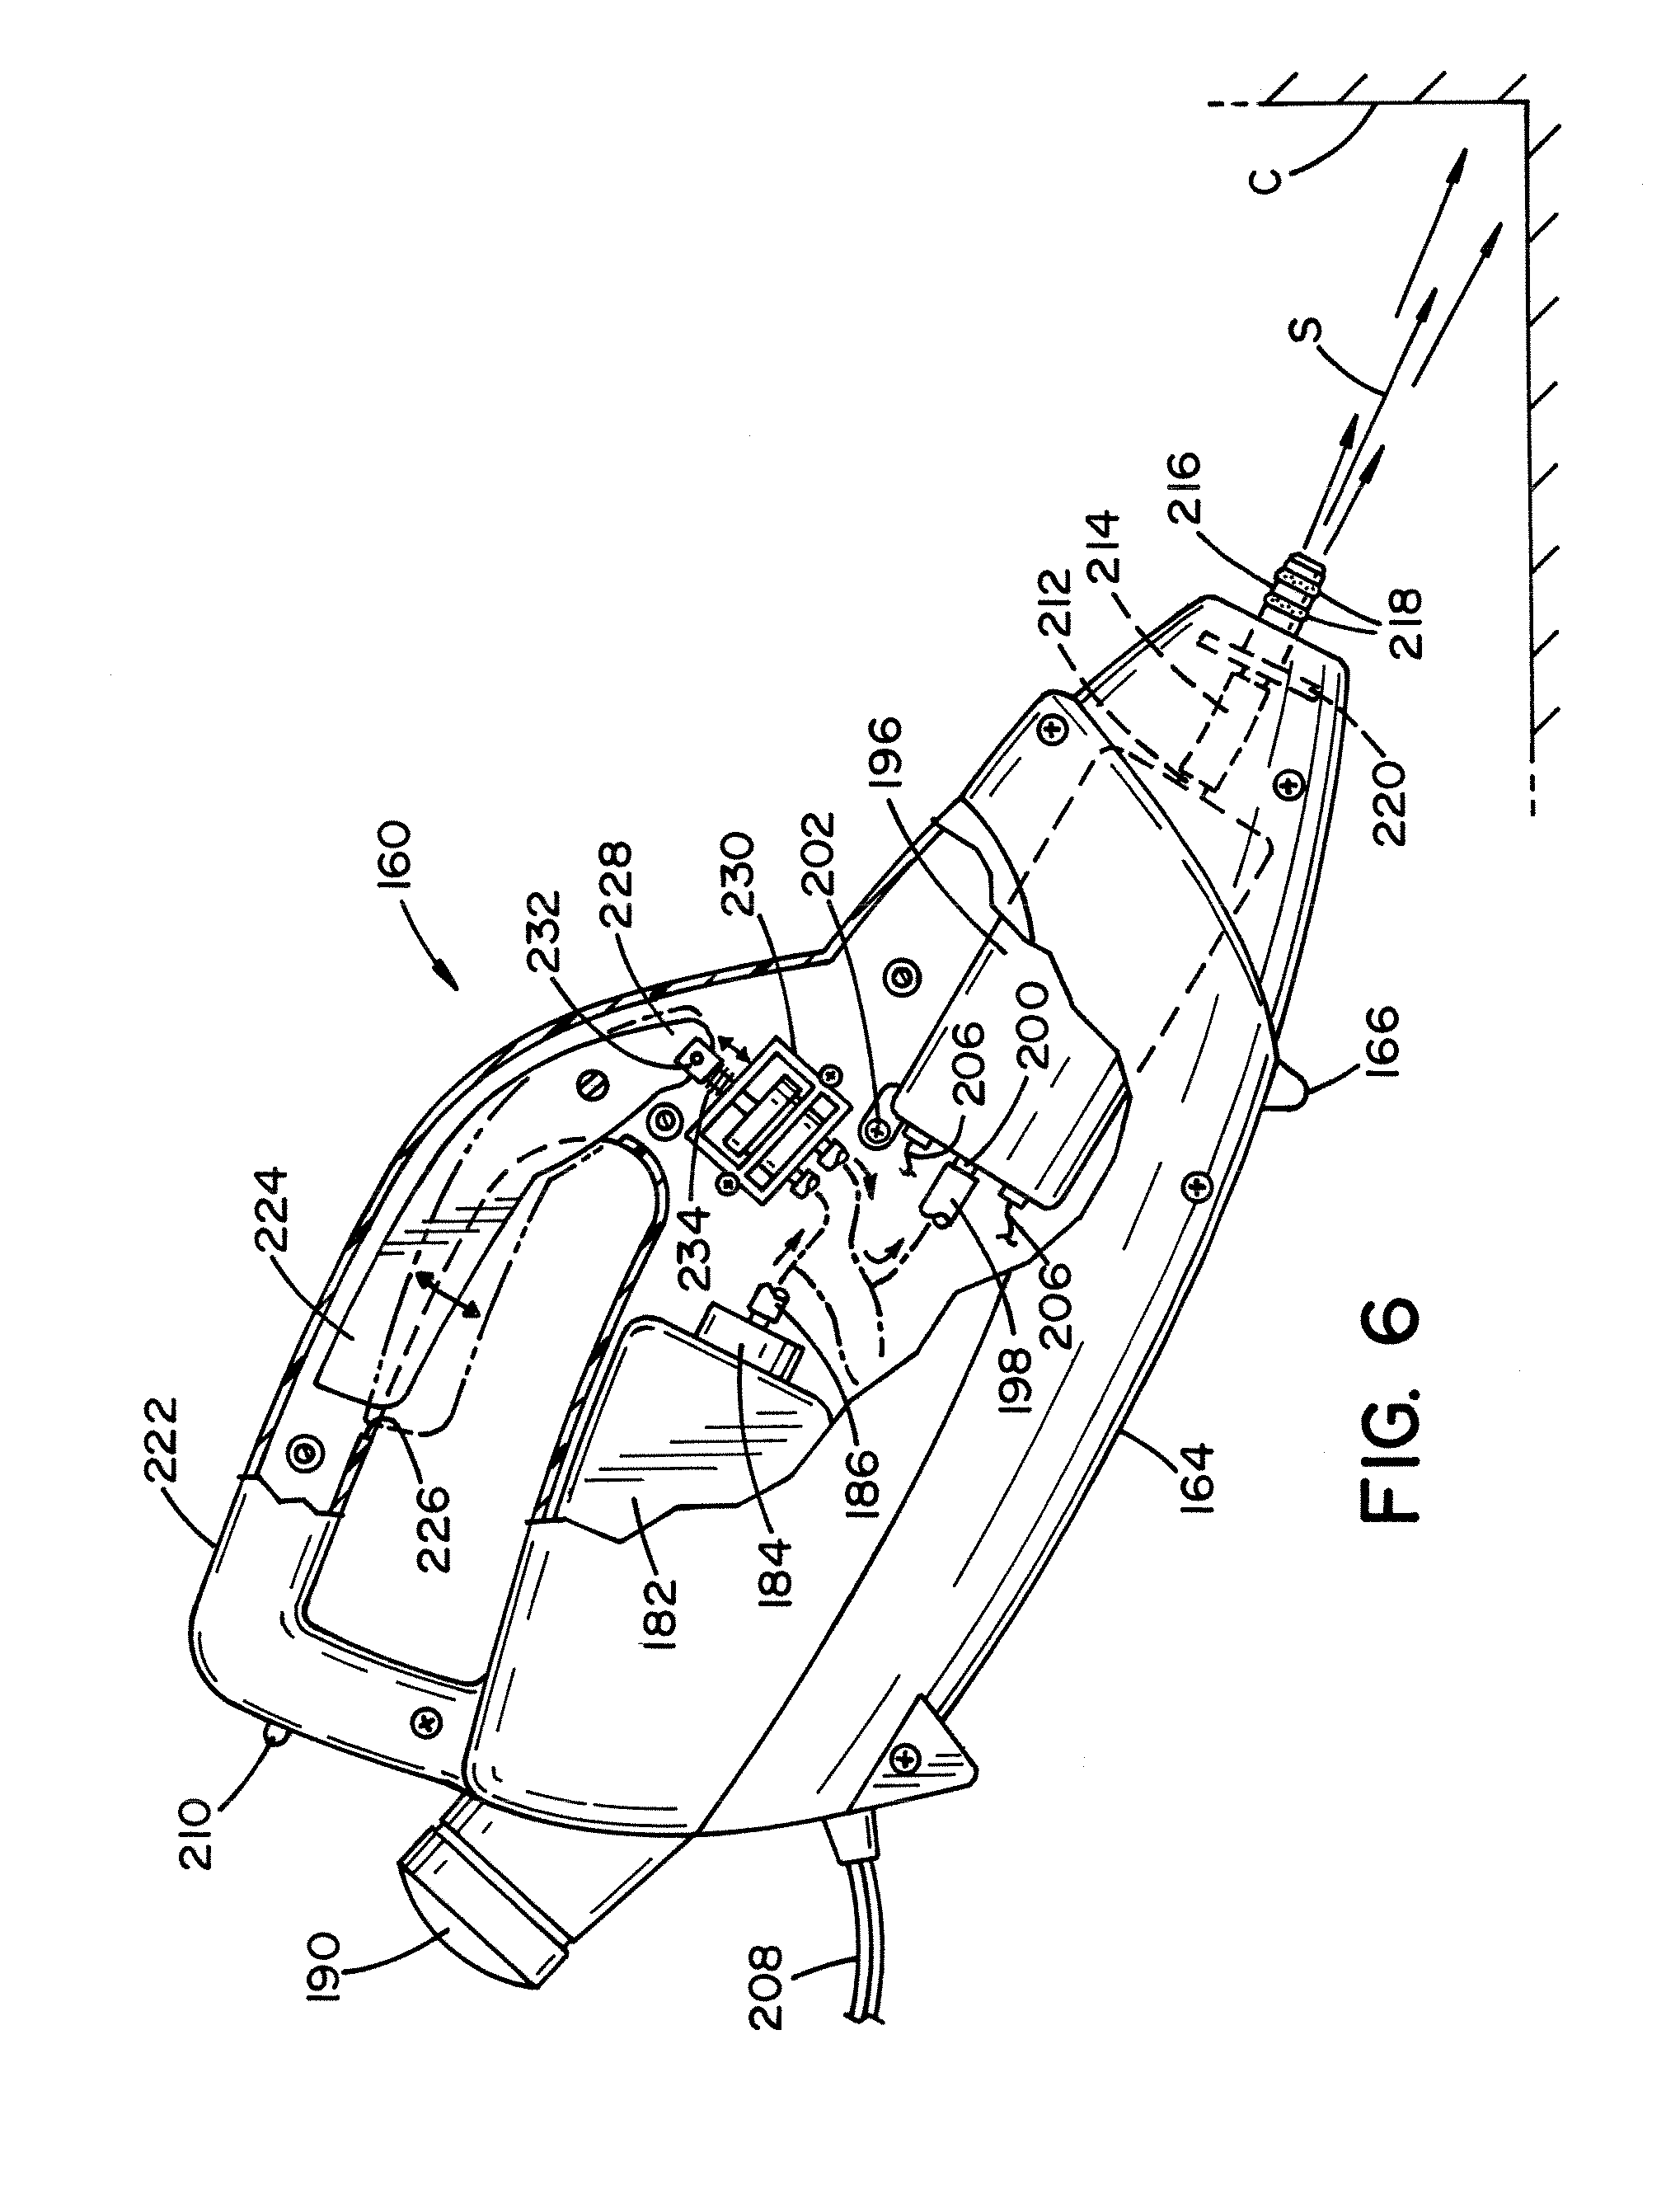 Patent Us8534301 Steam Mop Google Patents Carpet Extractor Diagram And Parts List For Bissell Wetcarpetcleaner Drawing